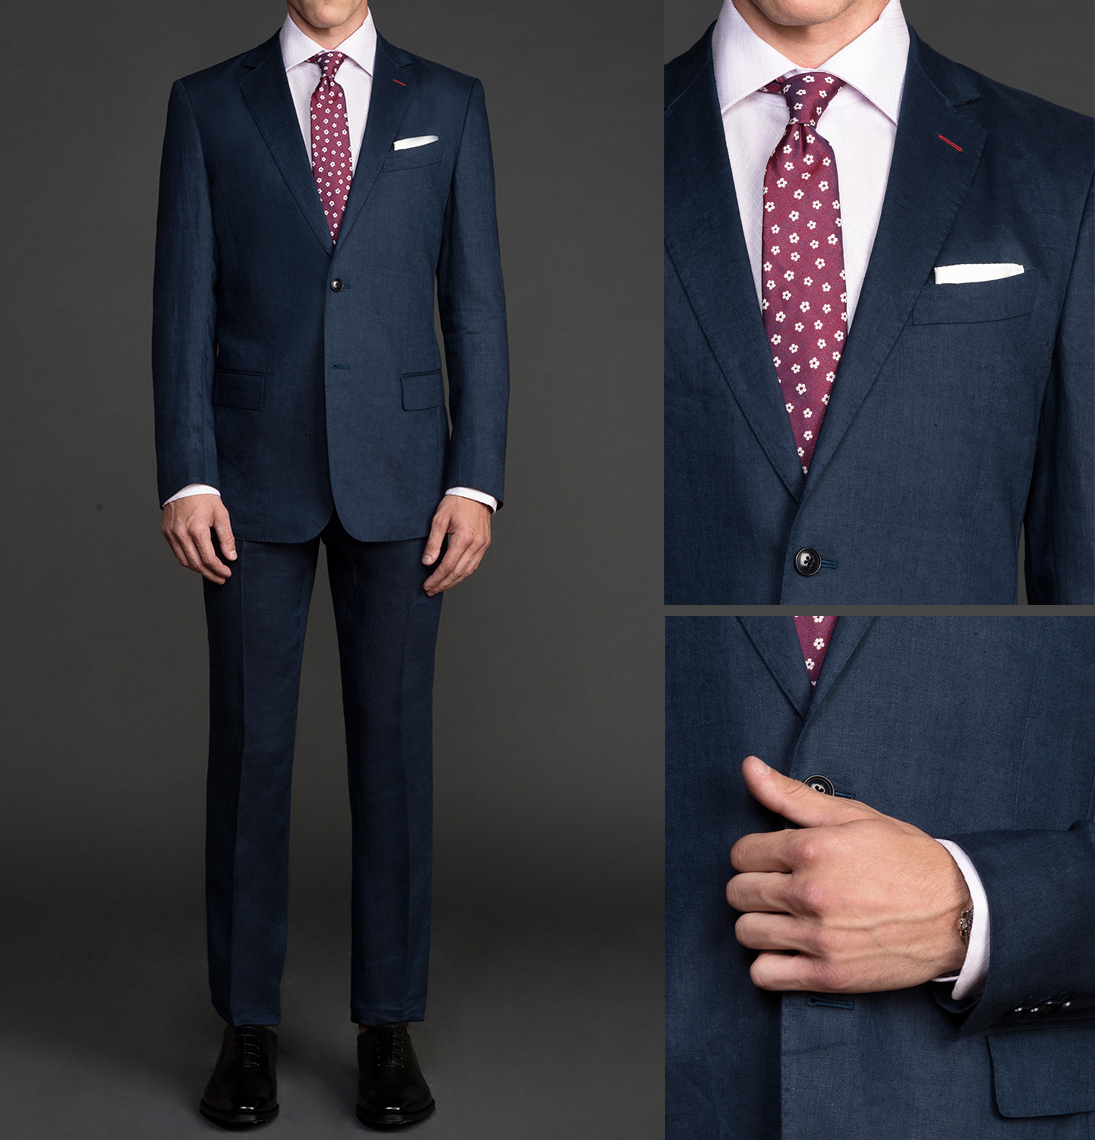 ESQ-Custom-Bespoke-Suits-For-Men_Navy-Suit-with-Detail-Shots_RHanelPhotography